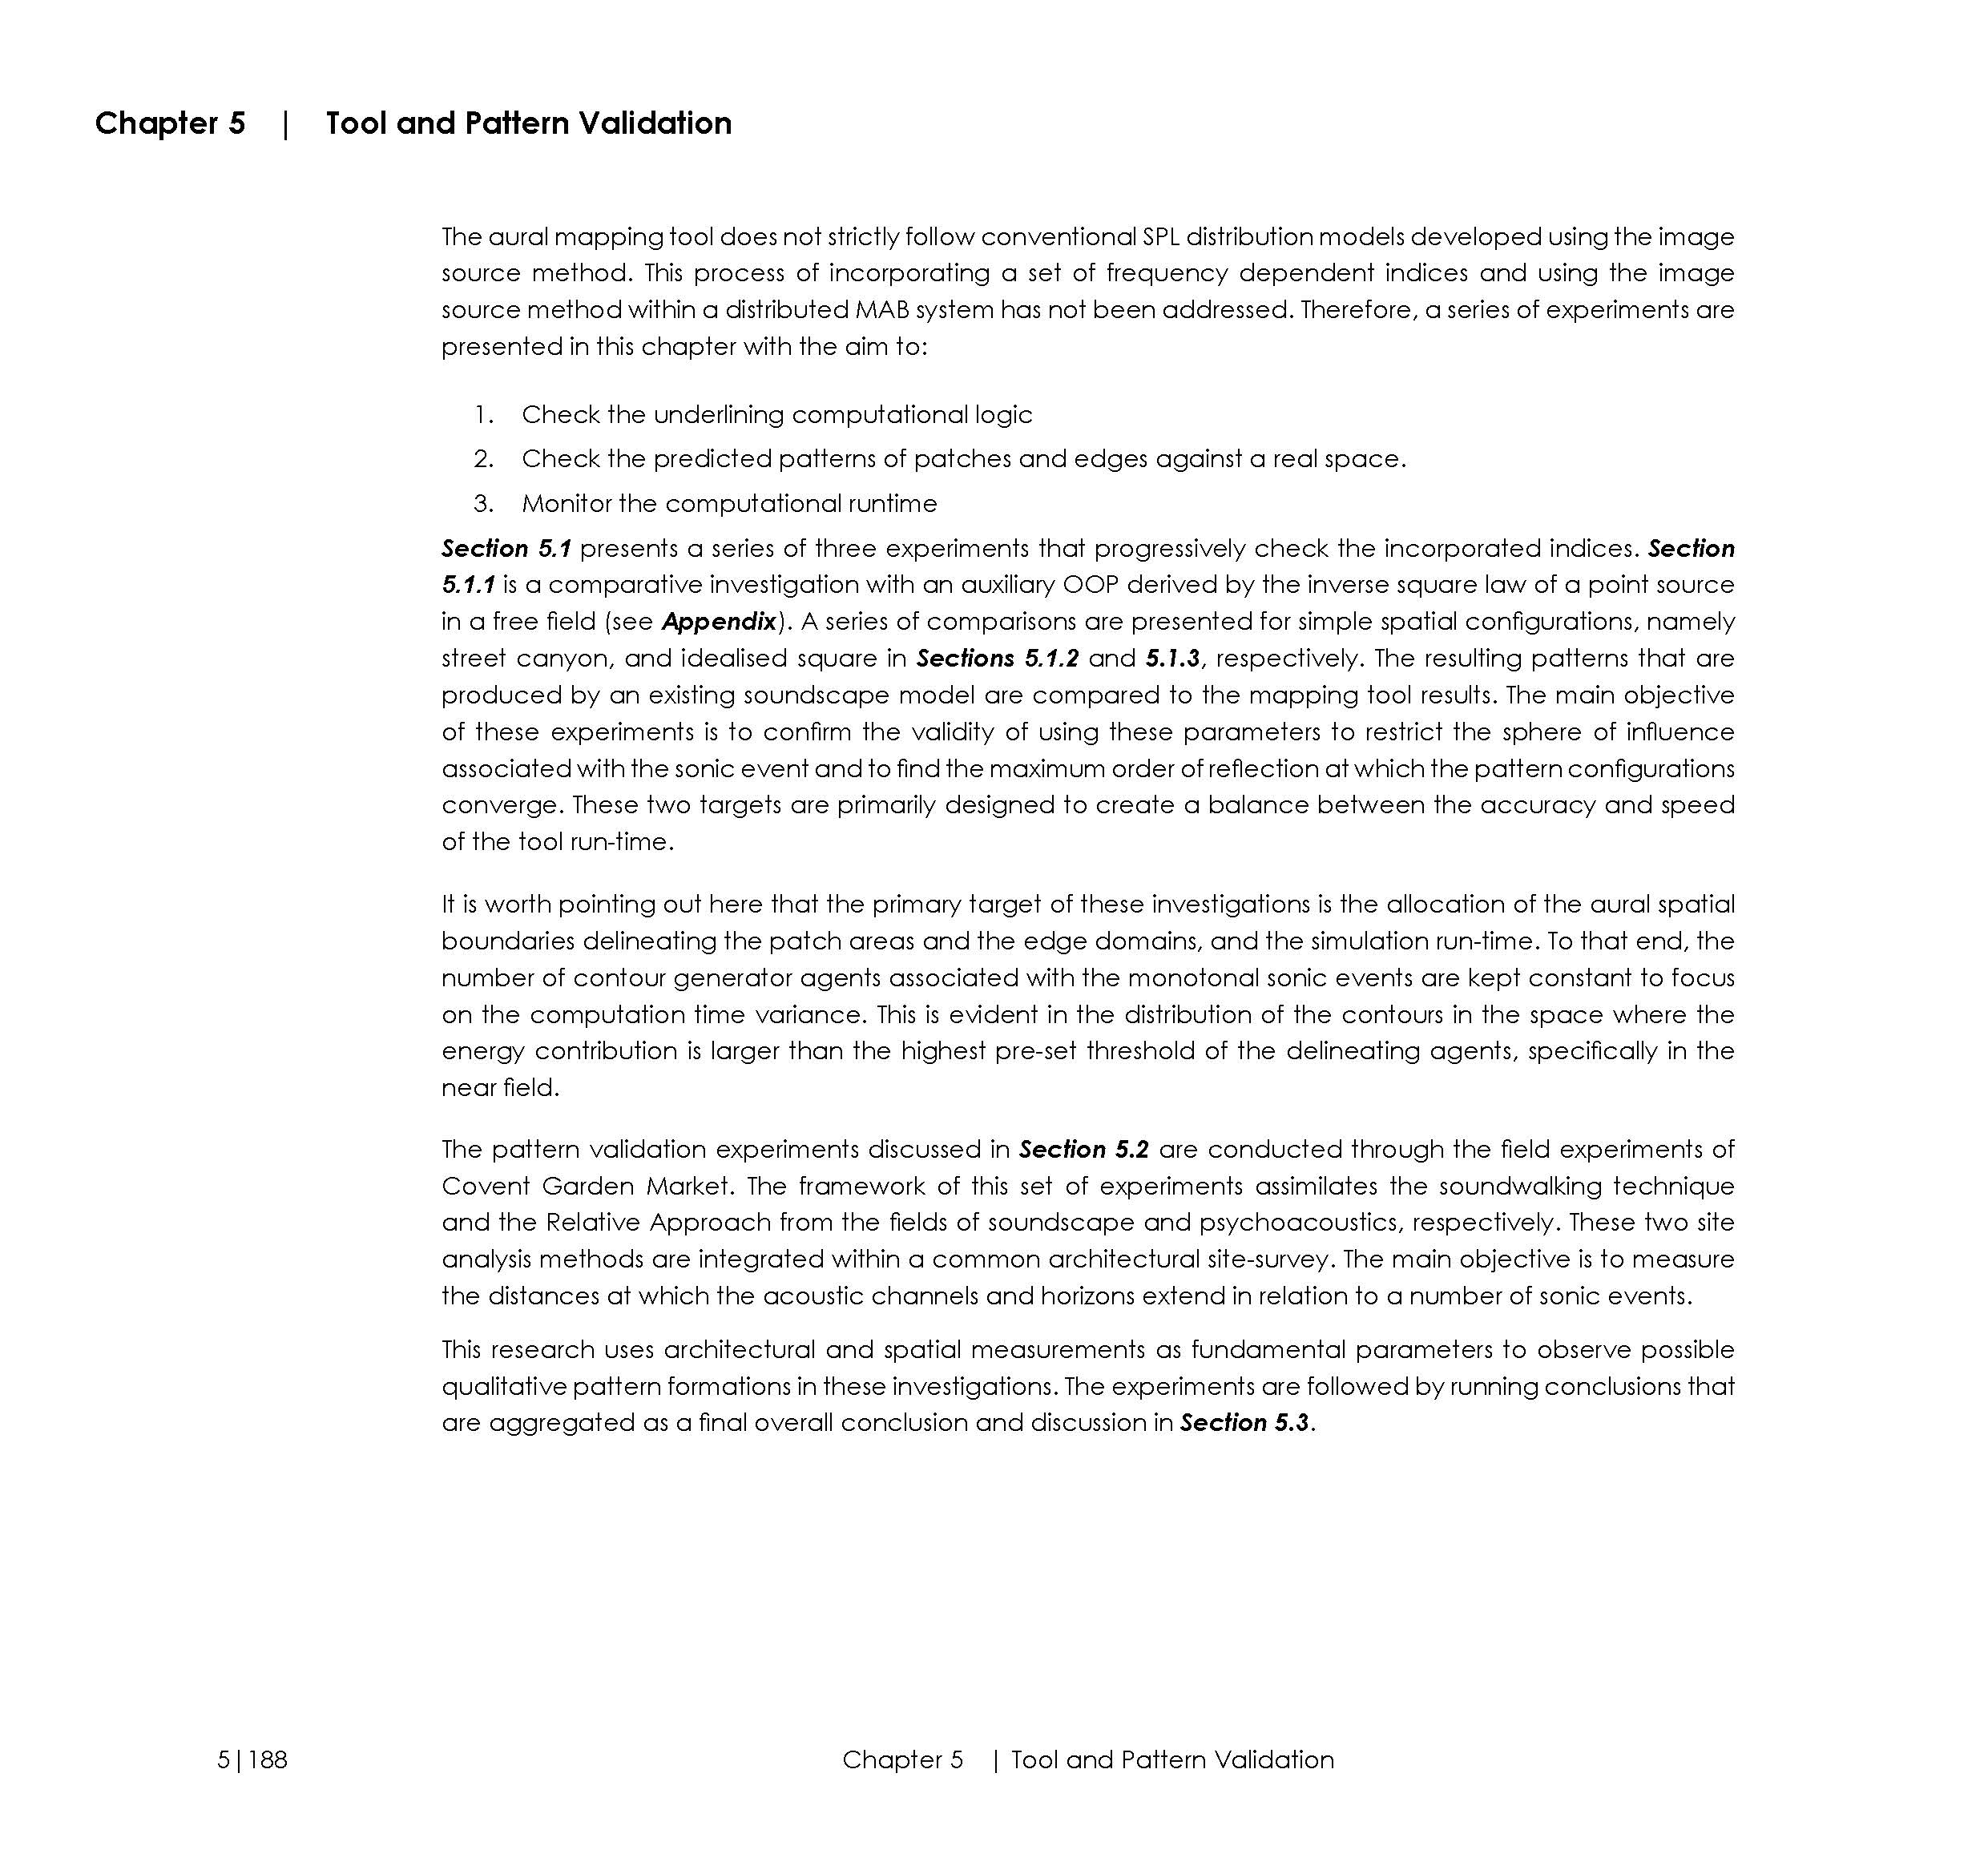 16.03.03_Thesis_01_Interactive_Page_224.jpg